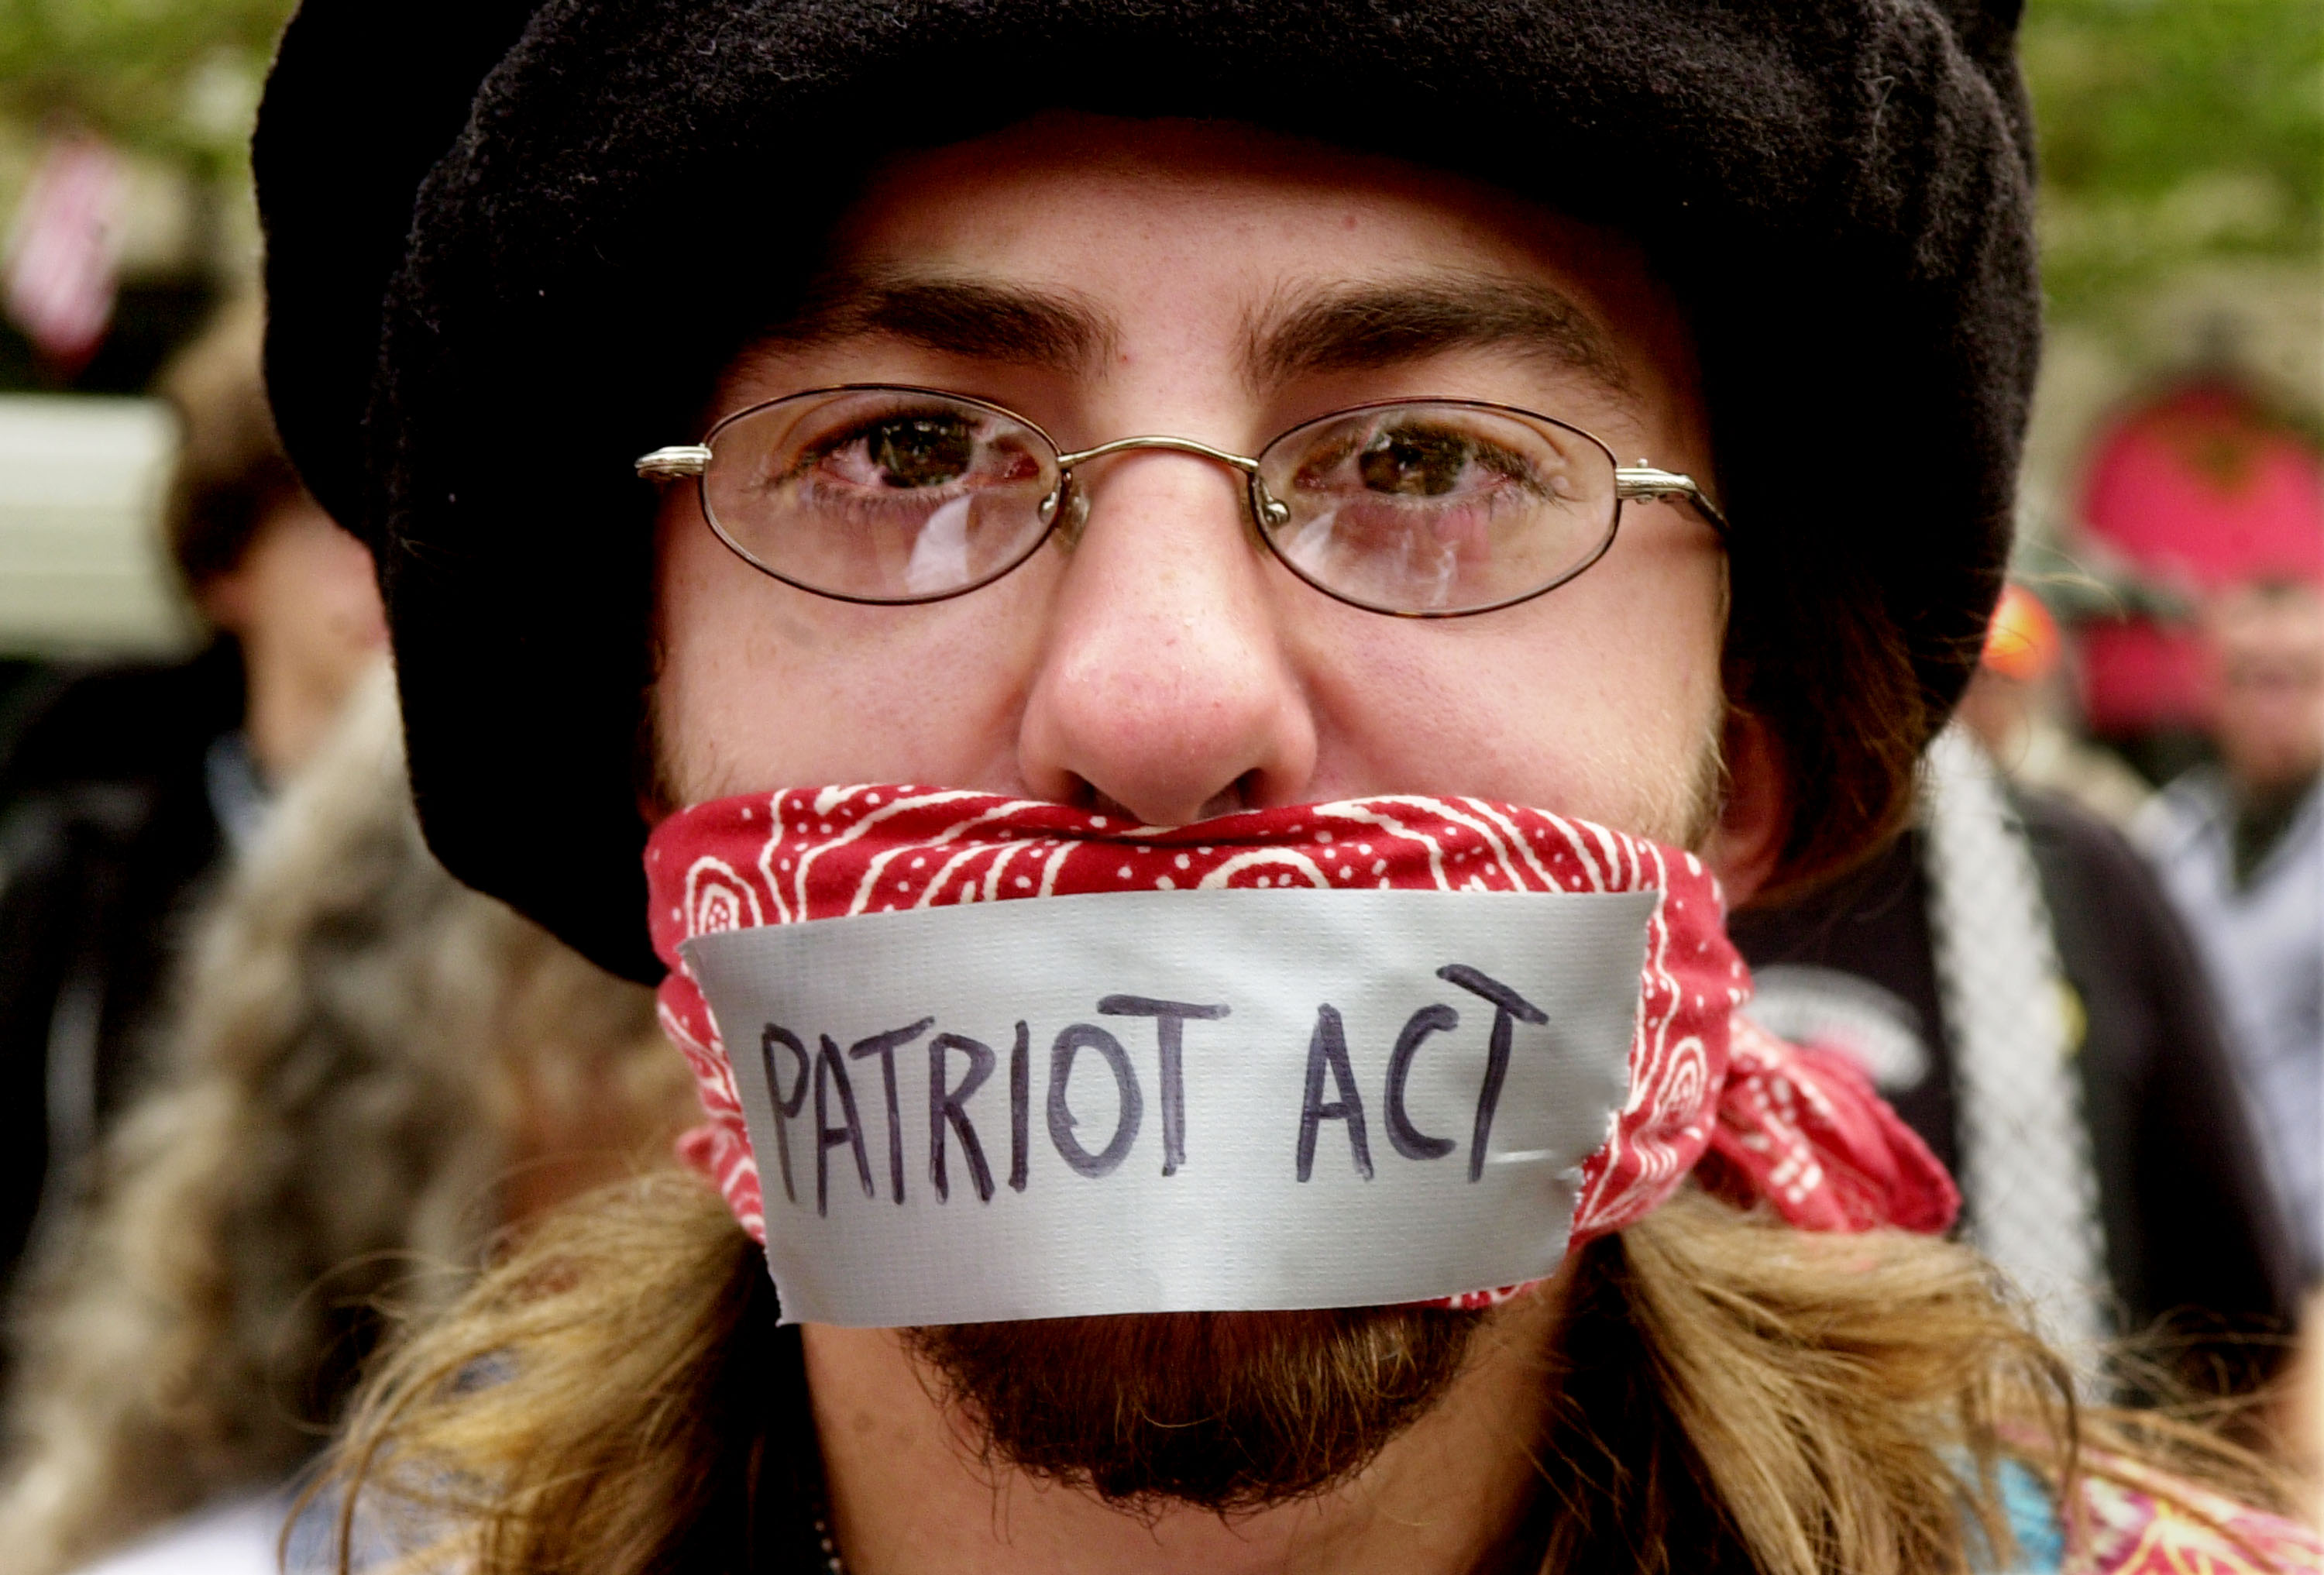 patriot act unconstitutional essay